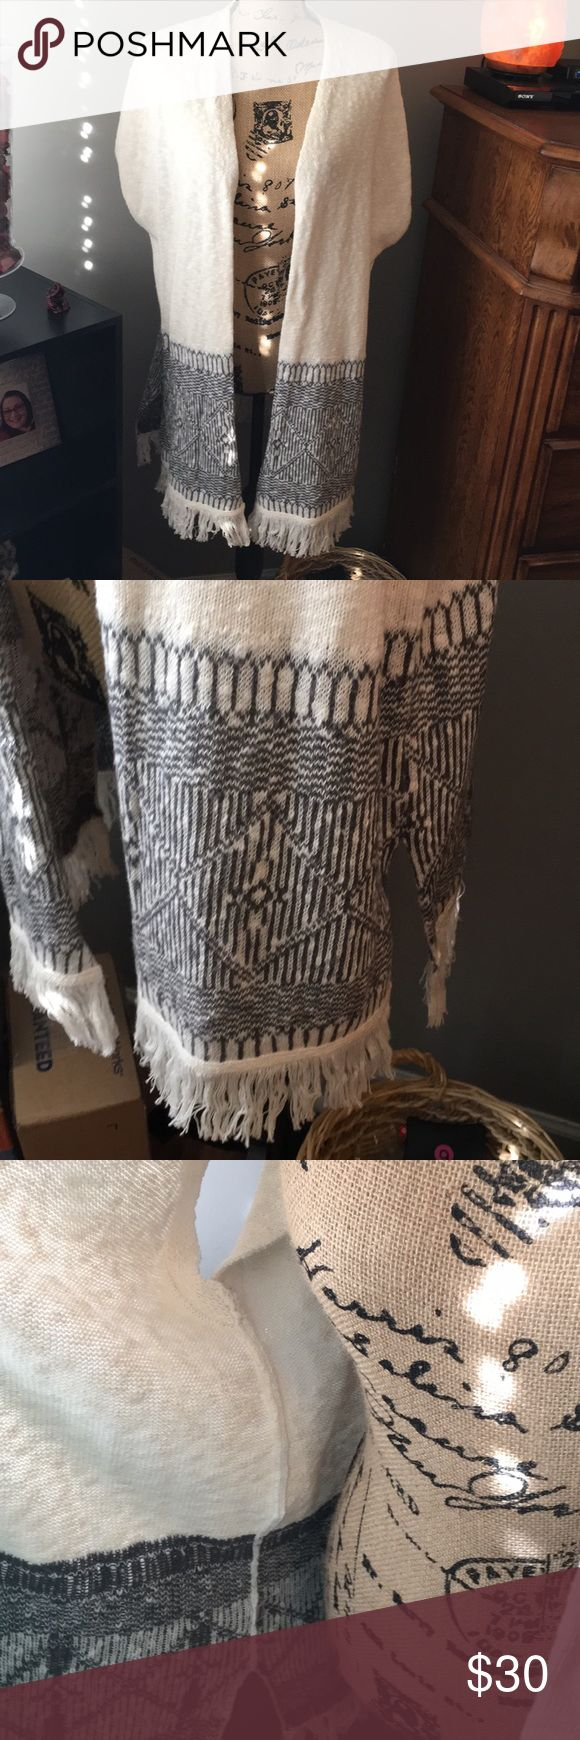 NEW Ann Taylor Loft Lounge Fringe Cardigan Sweater NWT Loft Outlet Lounge Fringed cream & gray sweater. Short cap style sleeves. Sz M/L - made to be roomy. Ann Taylor Sweaters